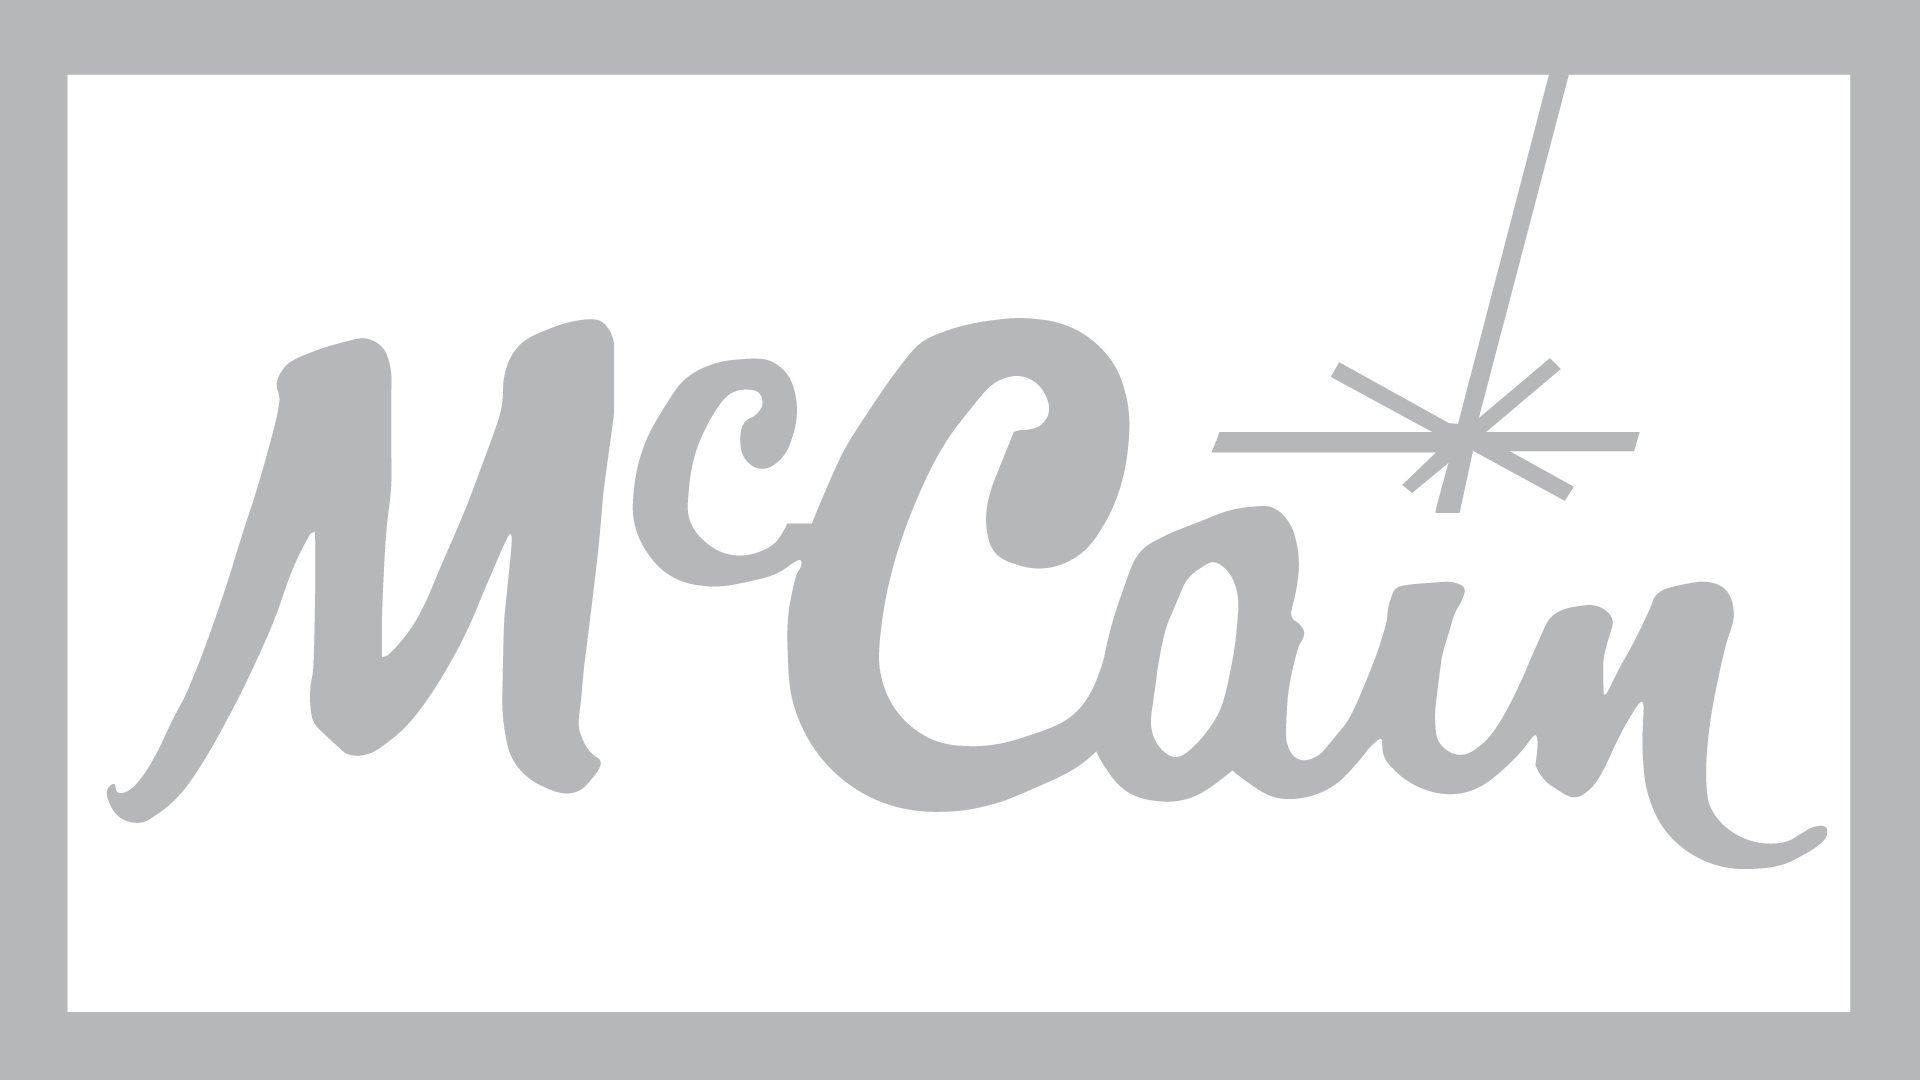 McCain foods logo. McCain foods is one of the many organisations People Builders has as client.